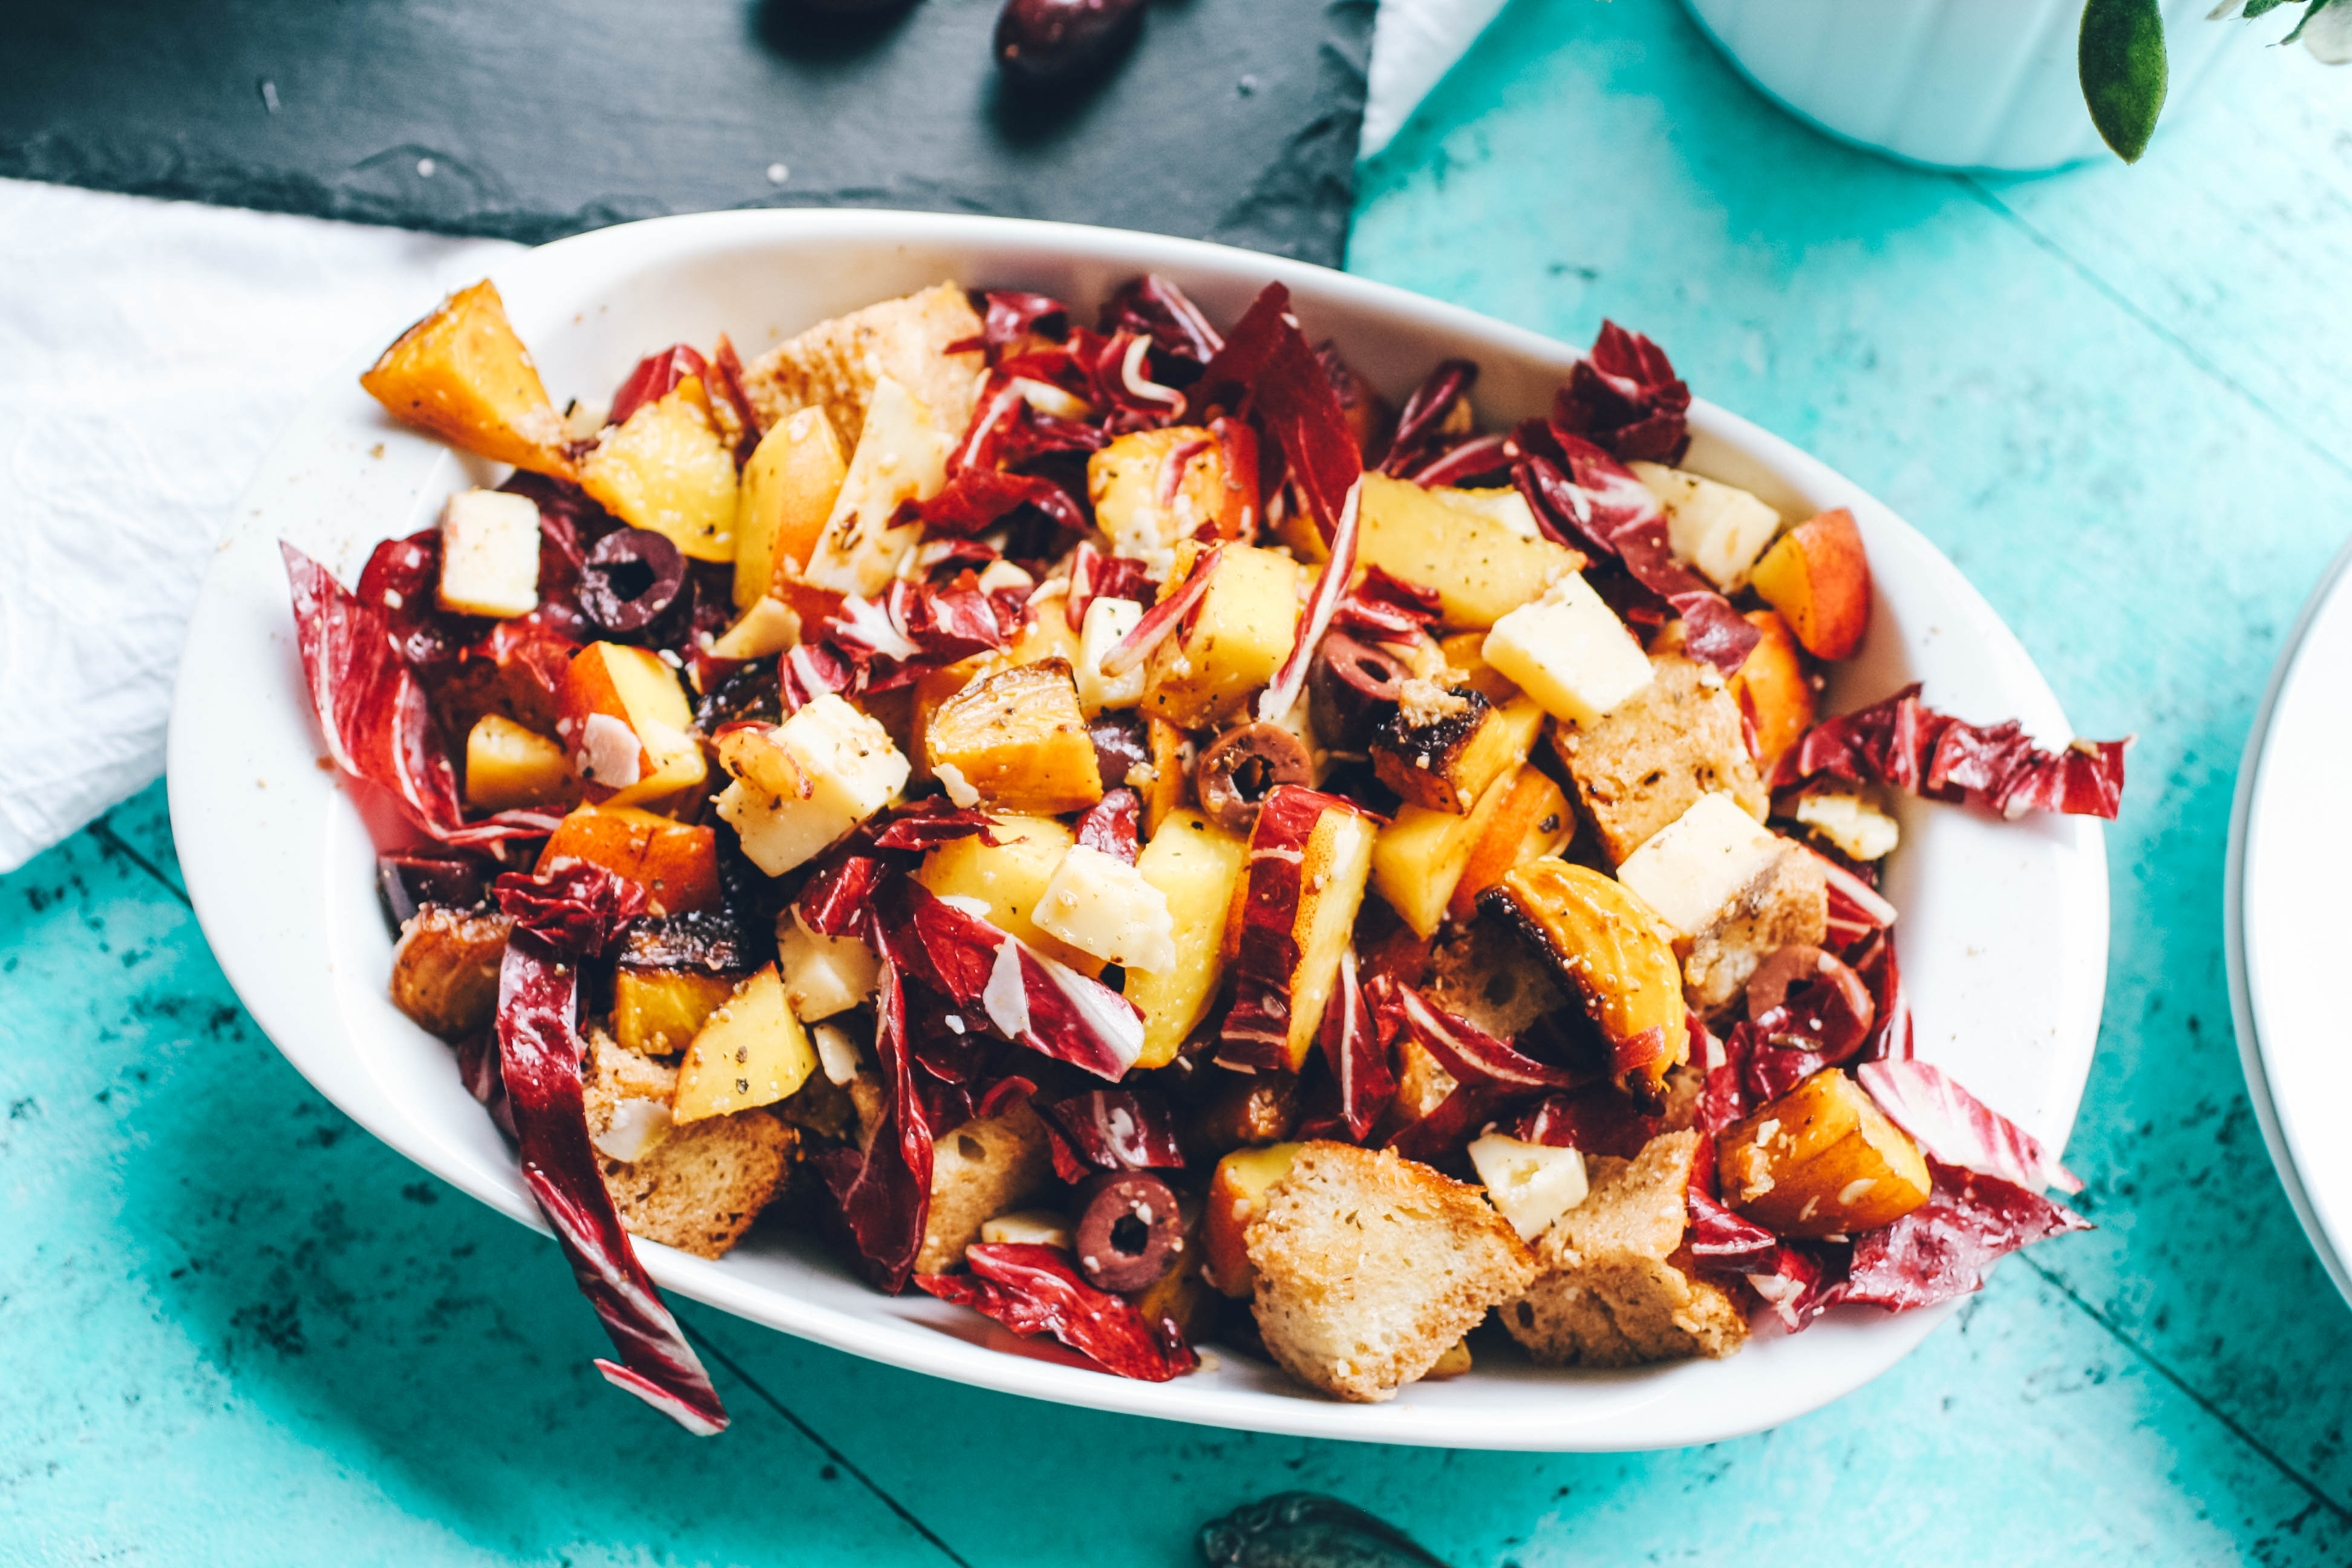 Roasted Beet, Peach & Radicchio Panzanella Salad is a salad that's filling and big on flavor. Dig into Roasted Beet, Peach & Radicchio Panzanella Salad for your next meal.